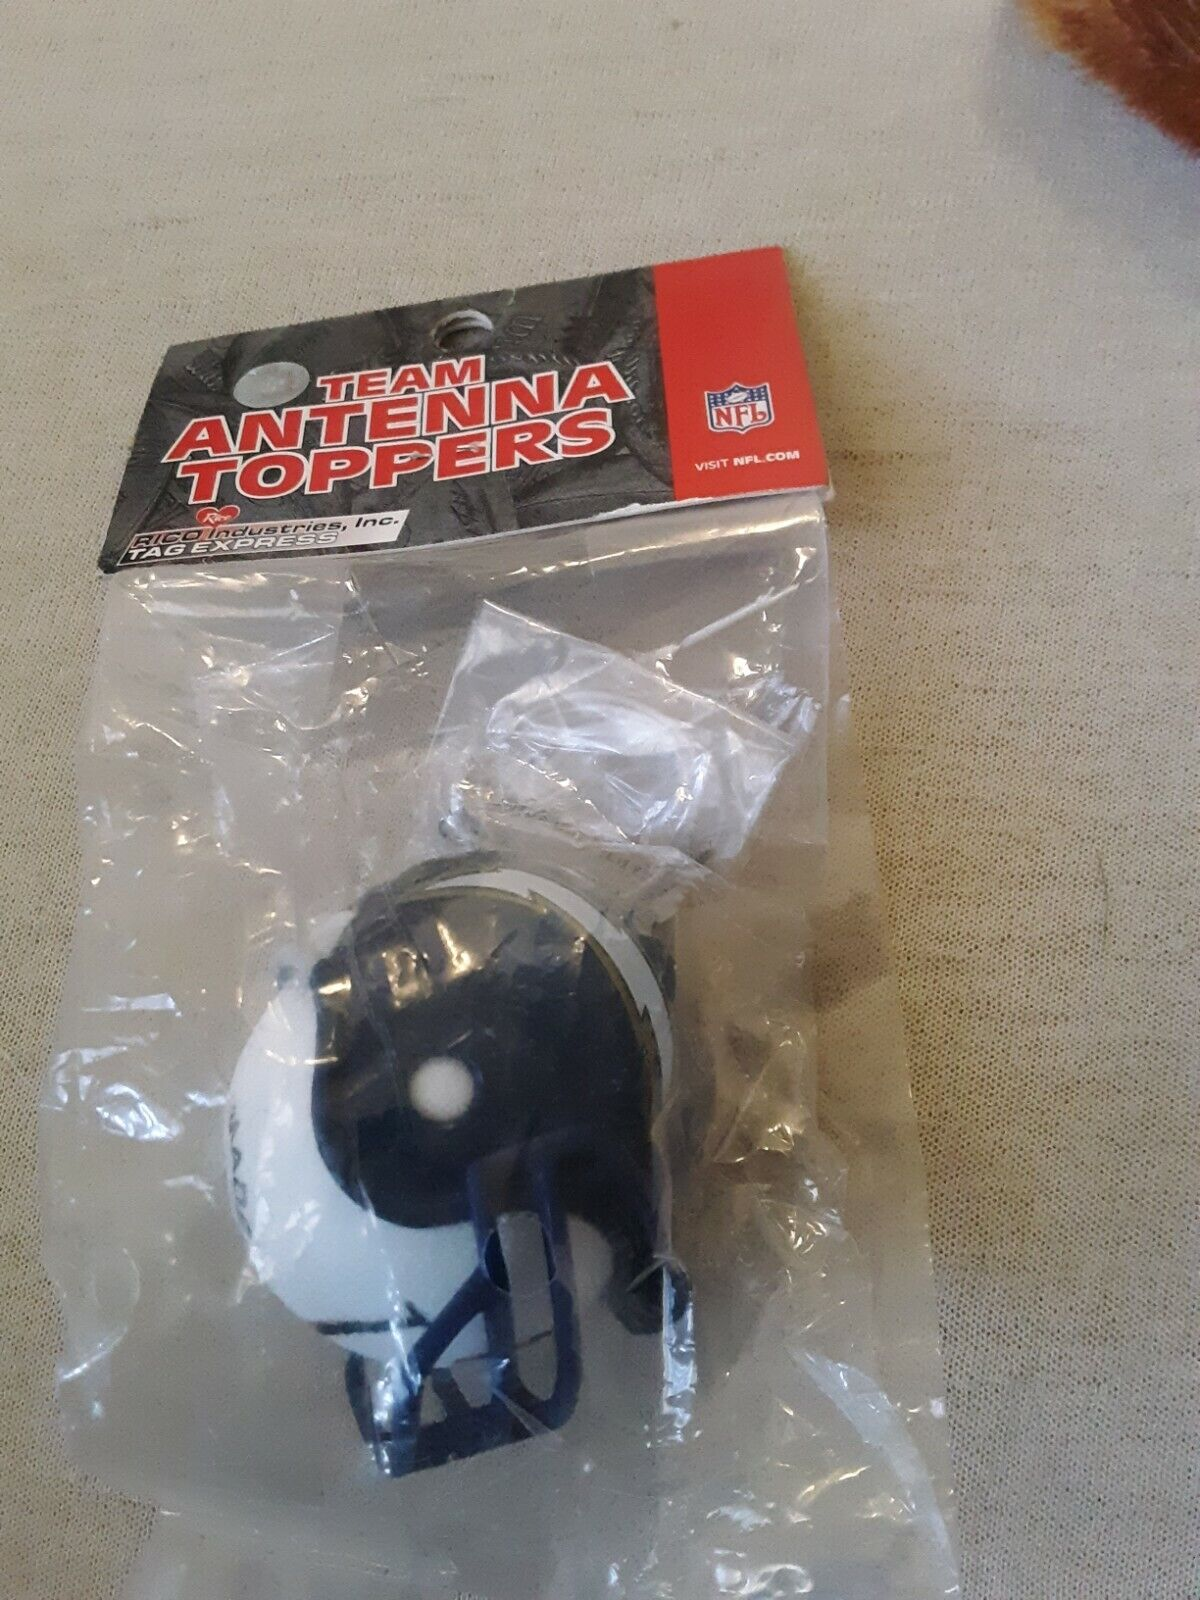 la los angeles chargers car antenna topper